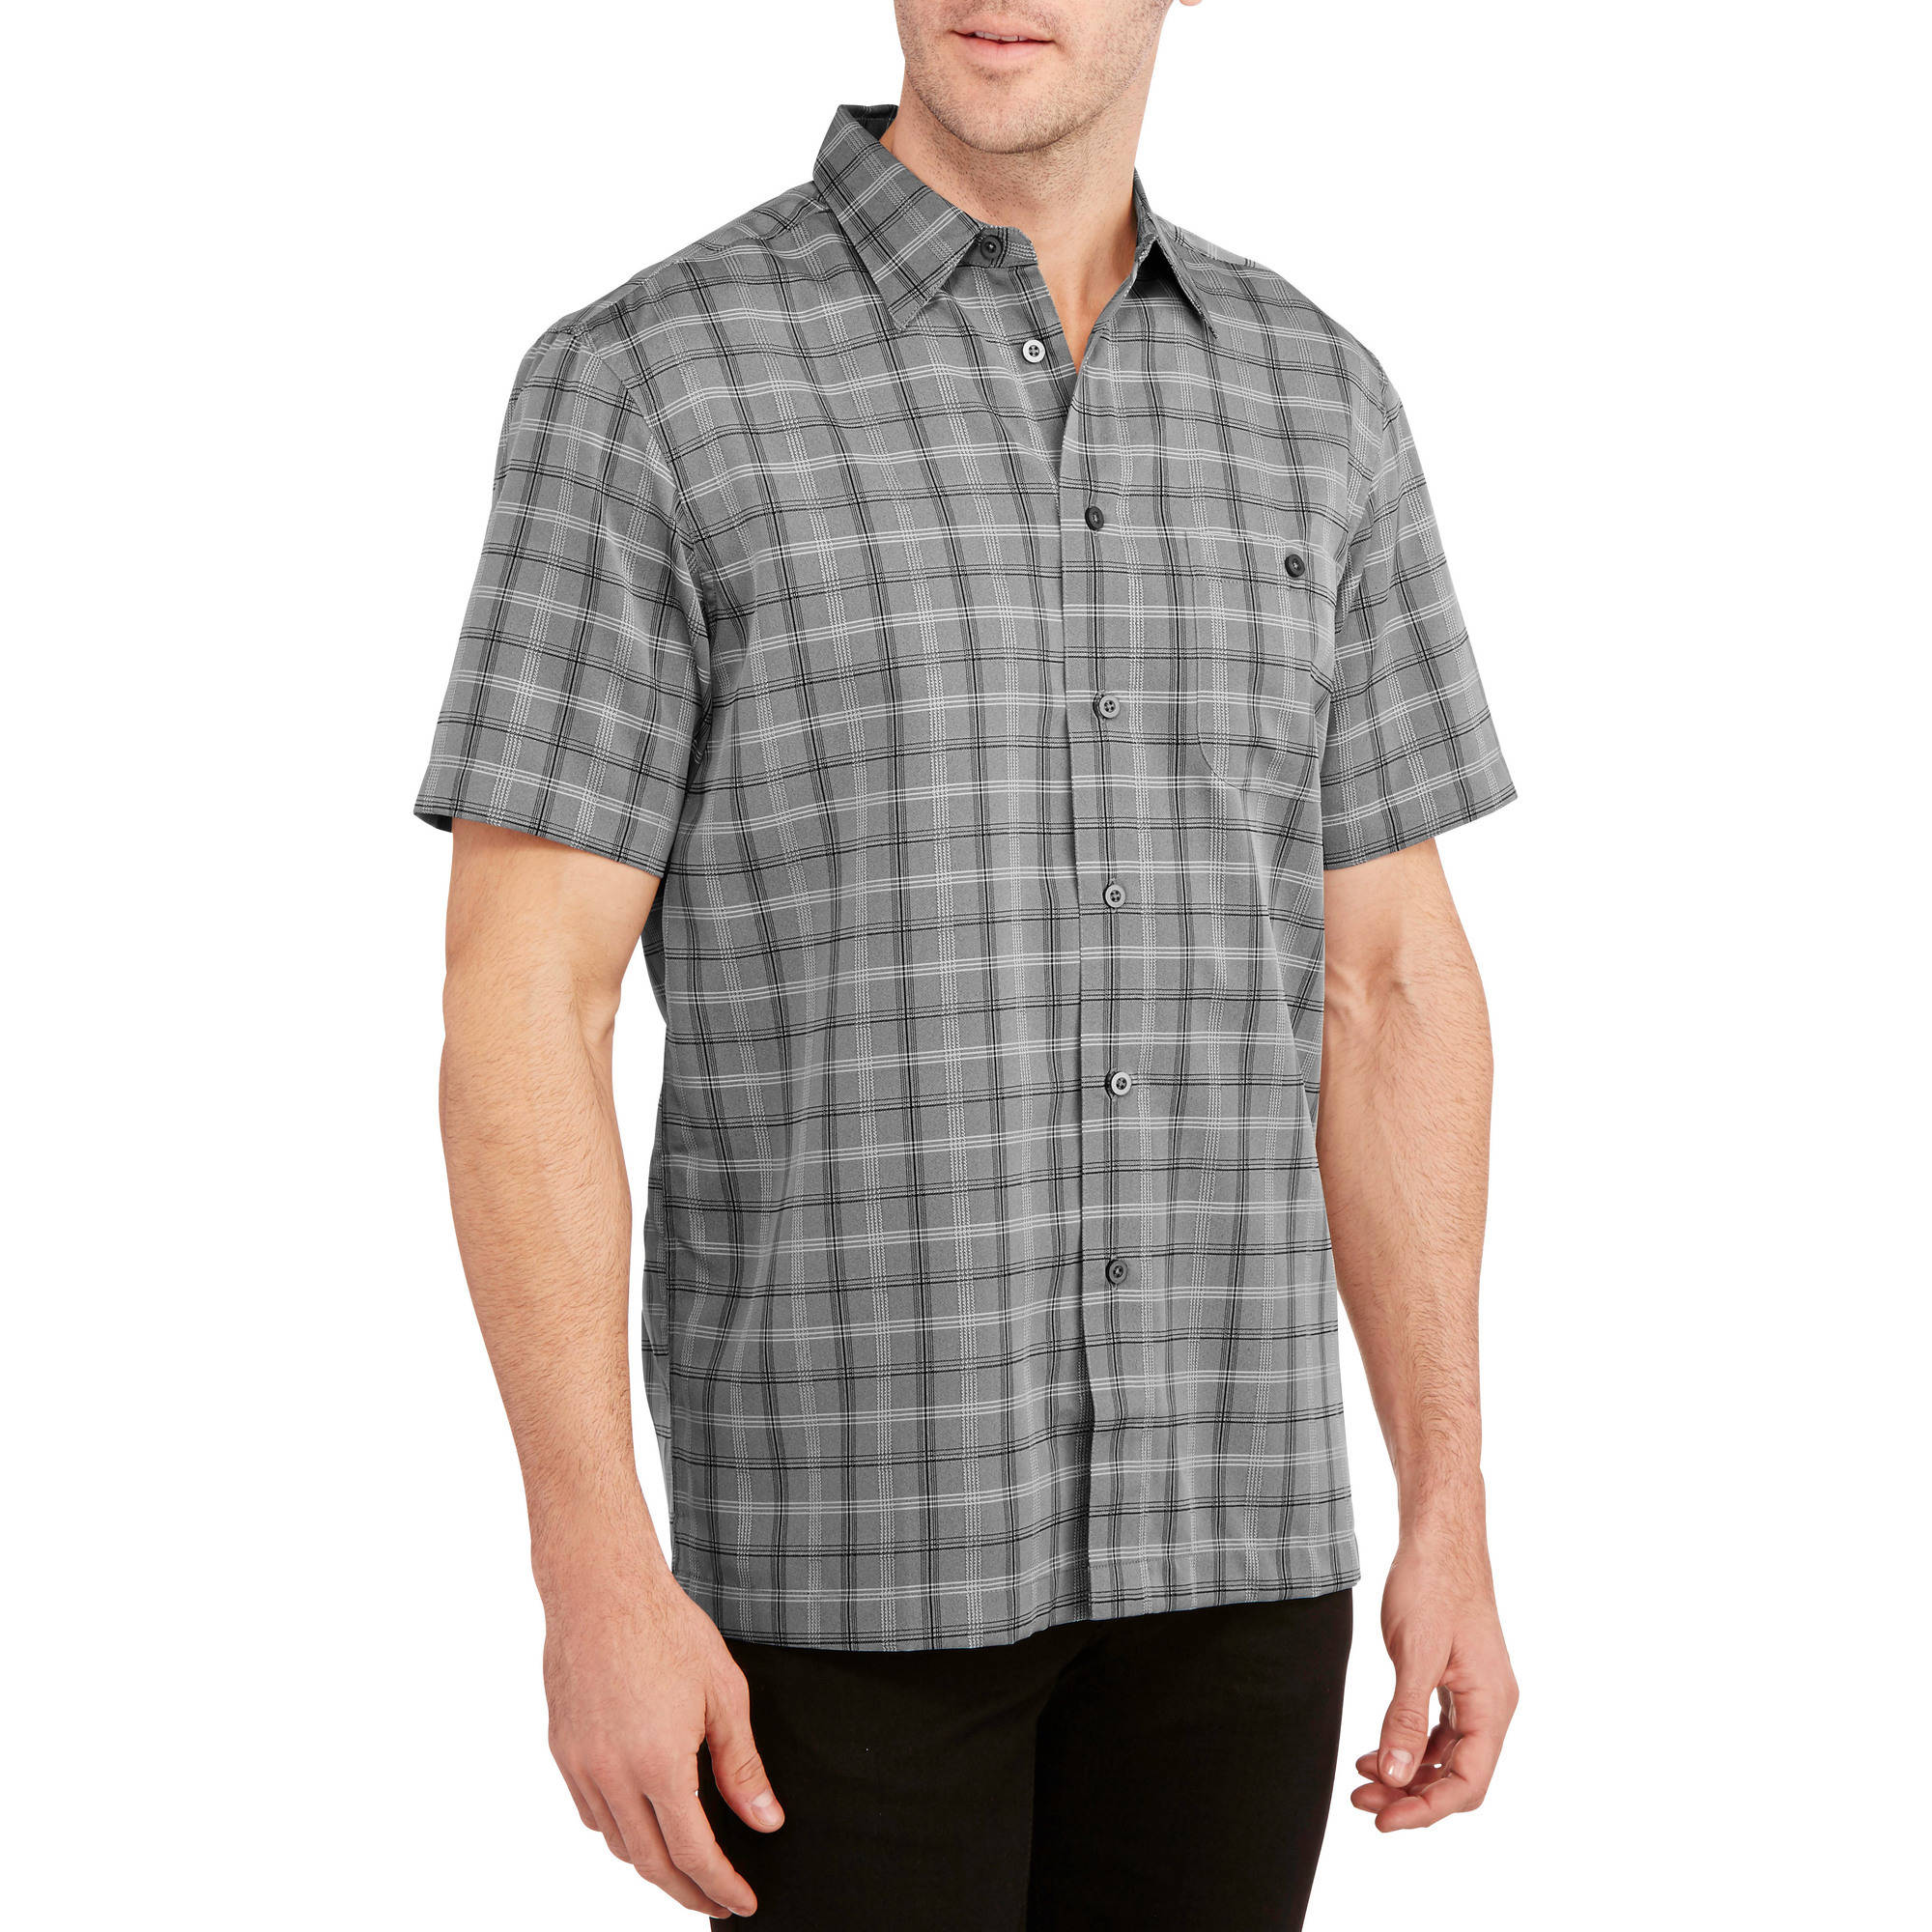 George Men's Short Sleeve Microfiber Shirt